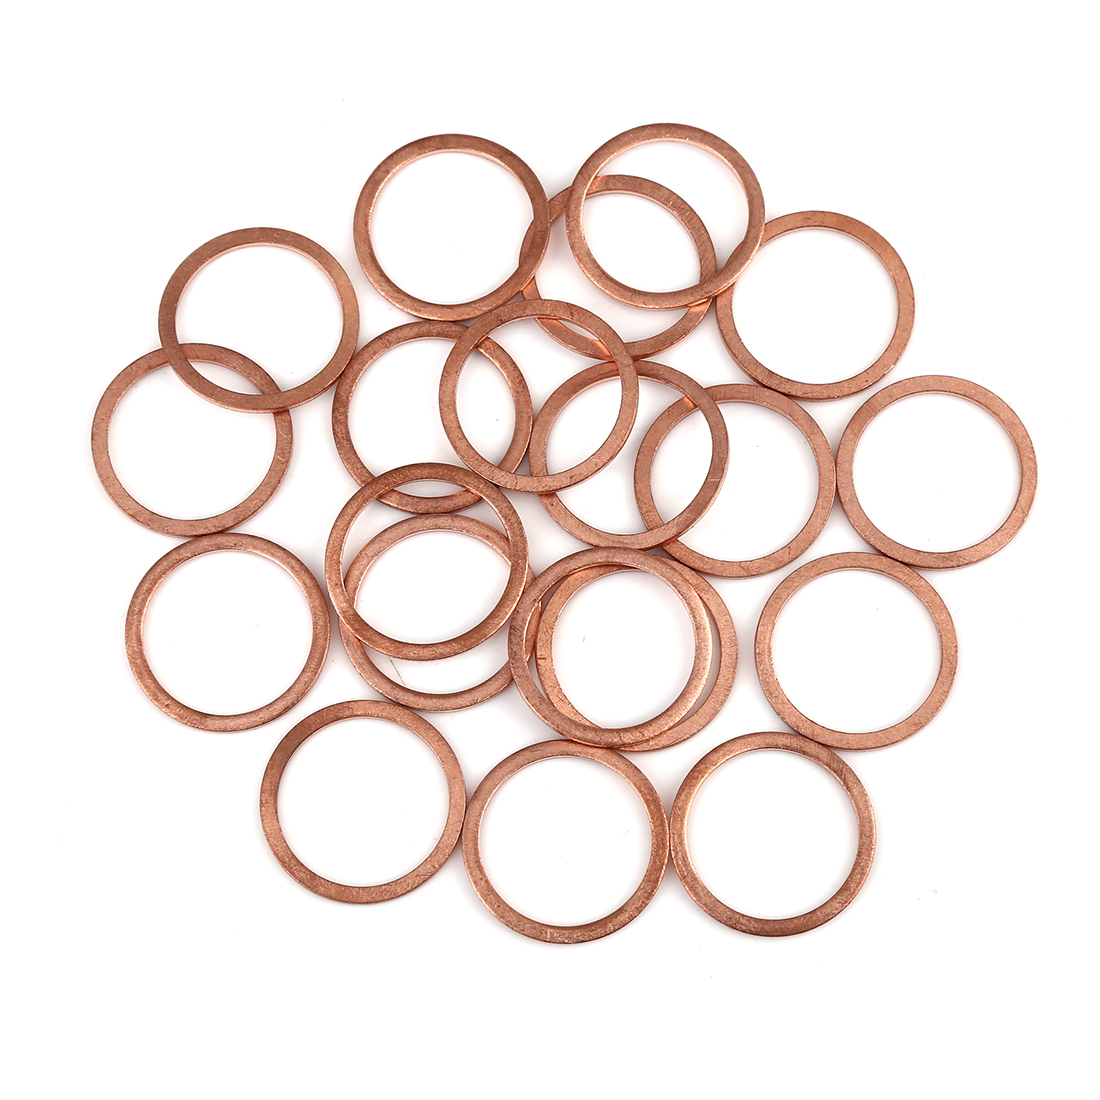 20pcs Copper Washer Flat Sealing Gasket Ring Spacer for Car 22 x 27 x 1.5mm